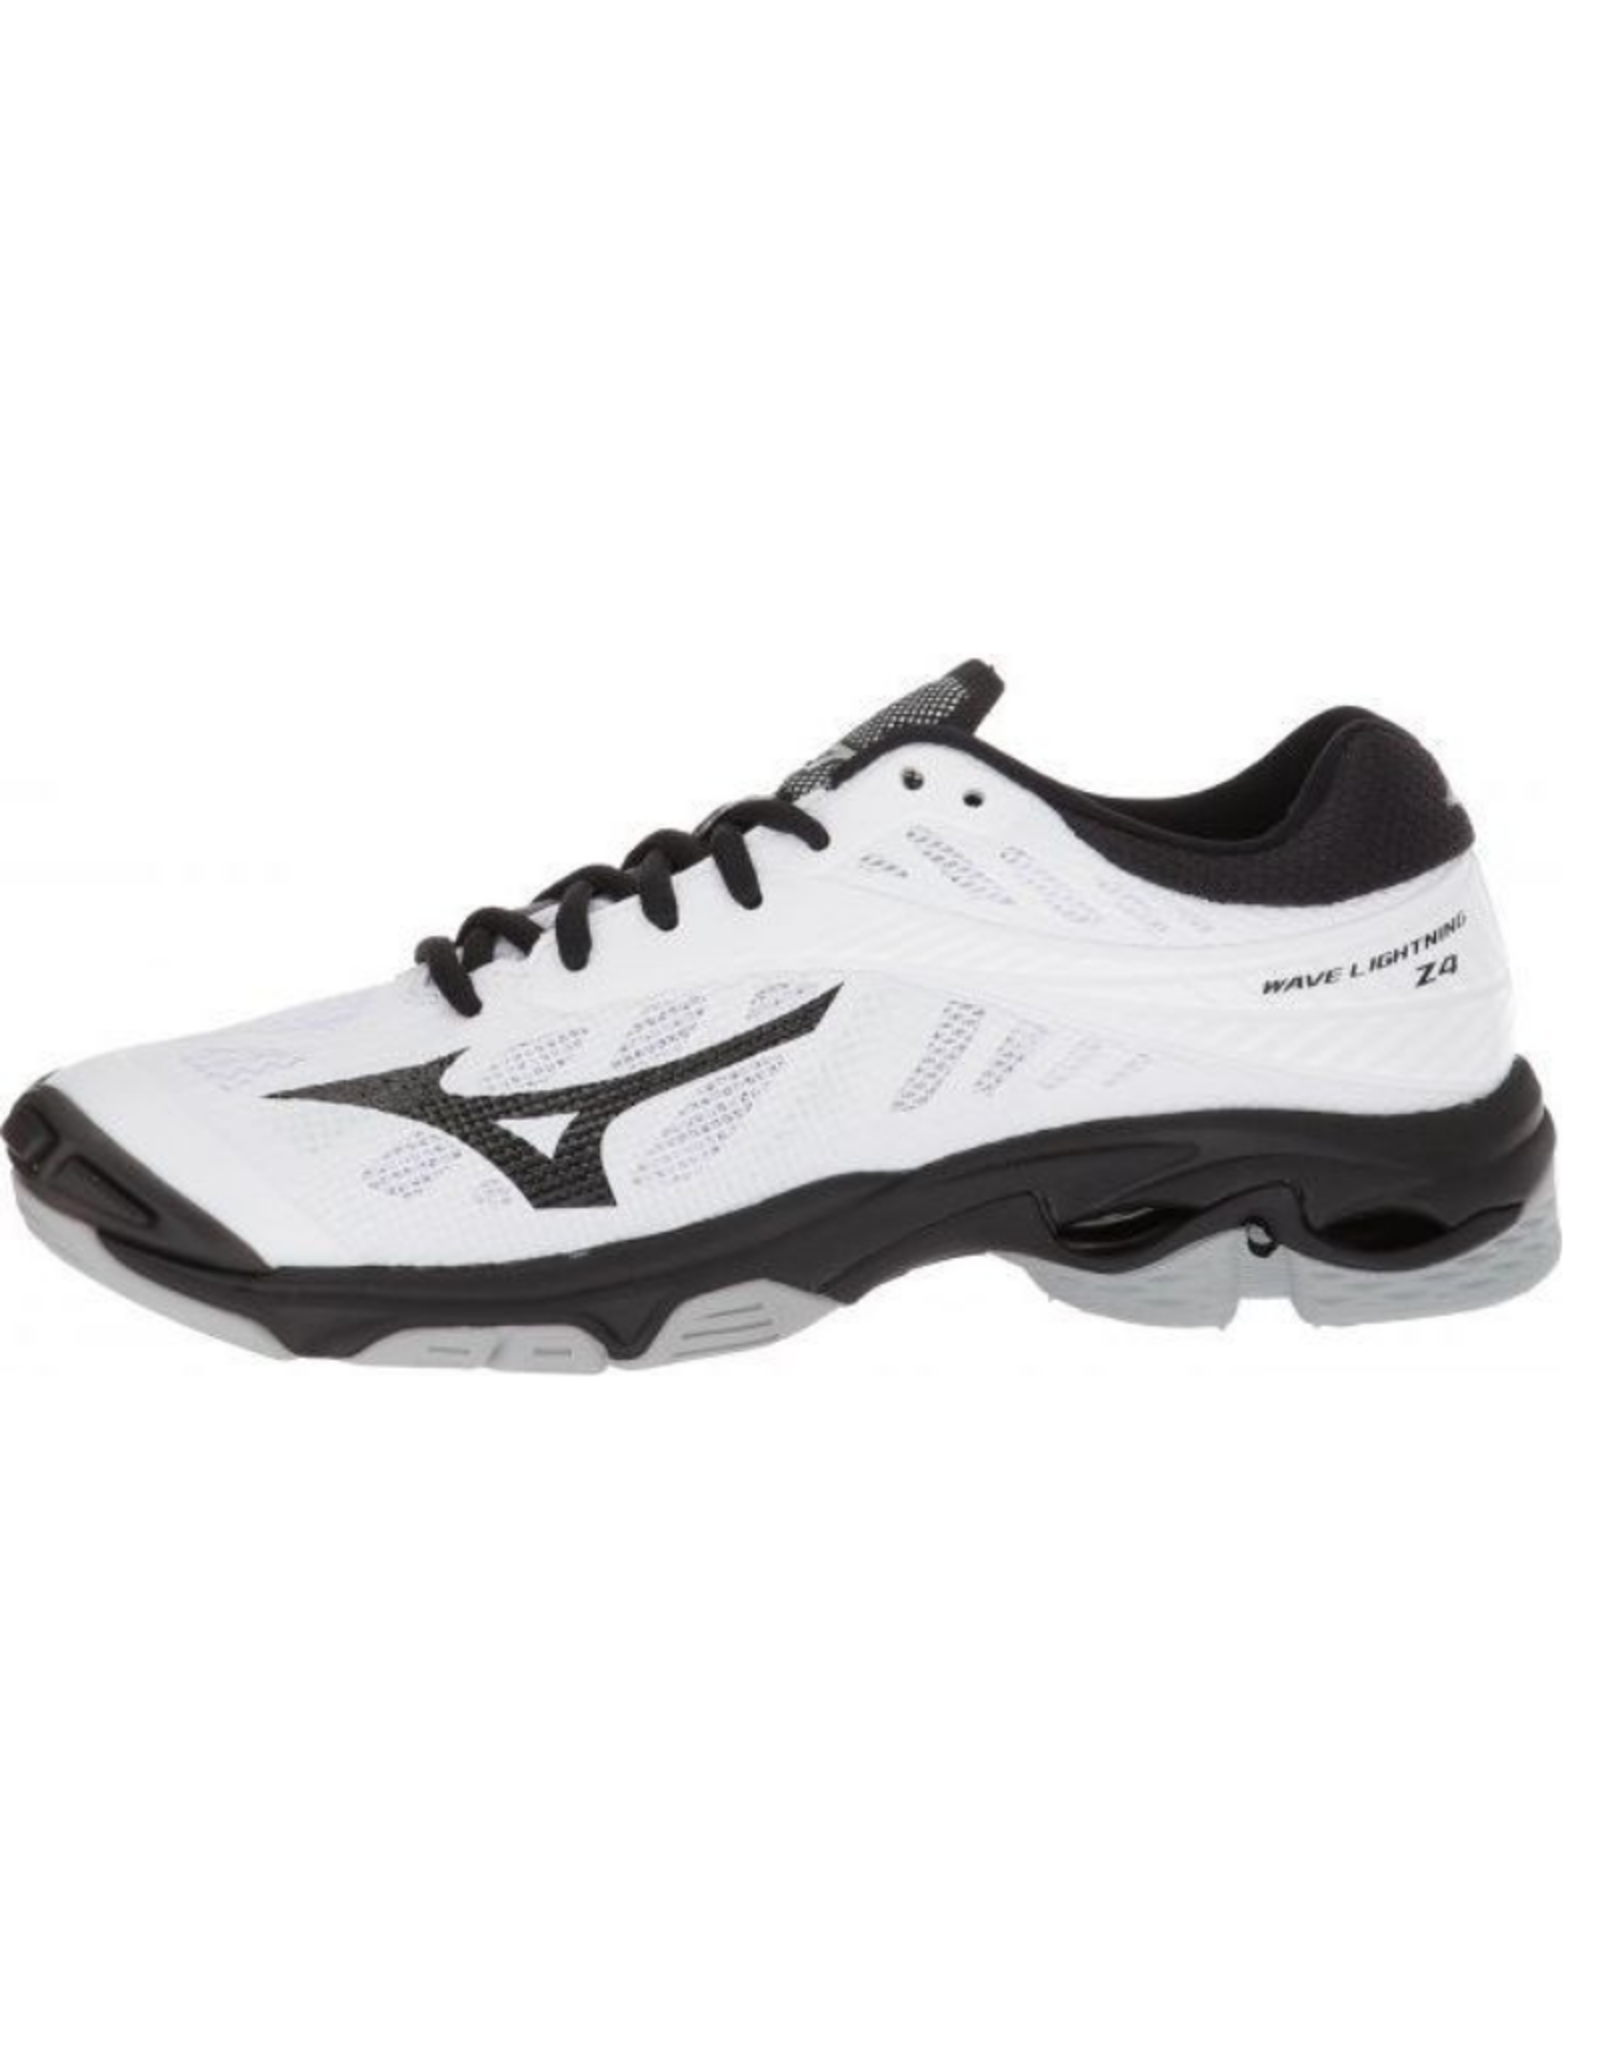 Mizuno Men's Wave Lightning Z4 White